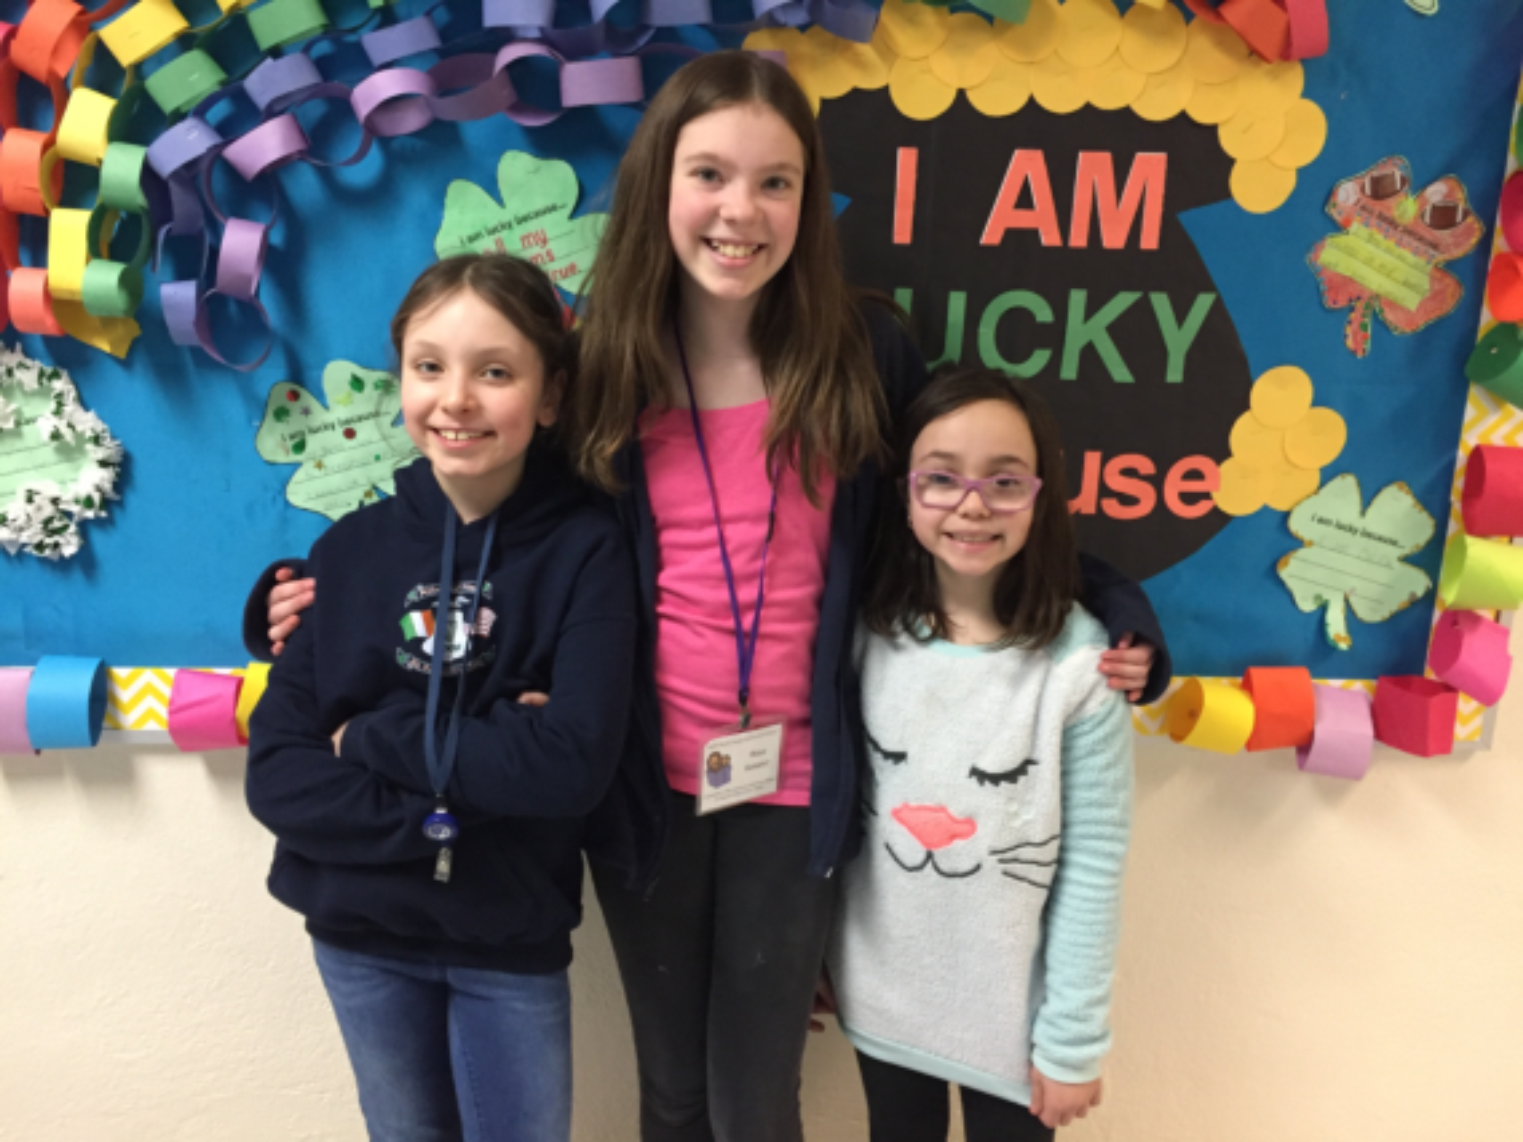 A young Literacy volunteer smiling with two young girls